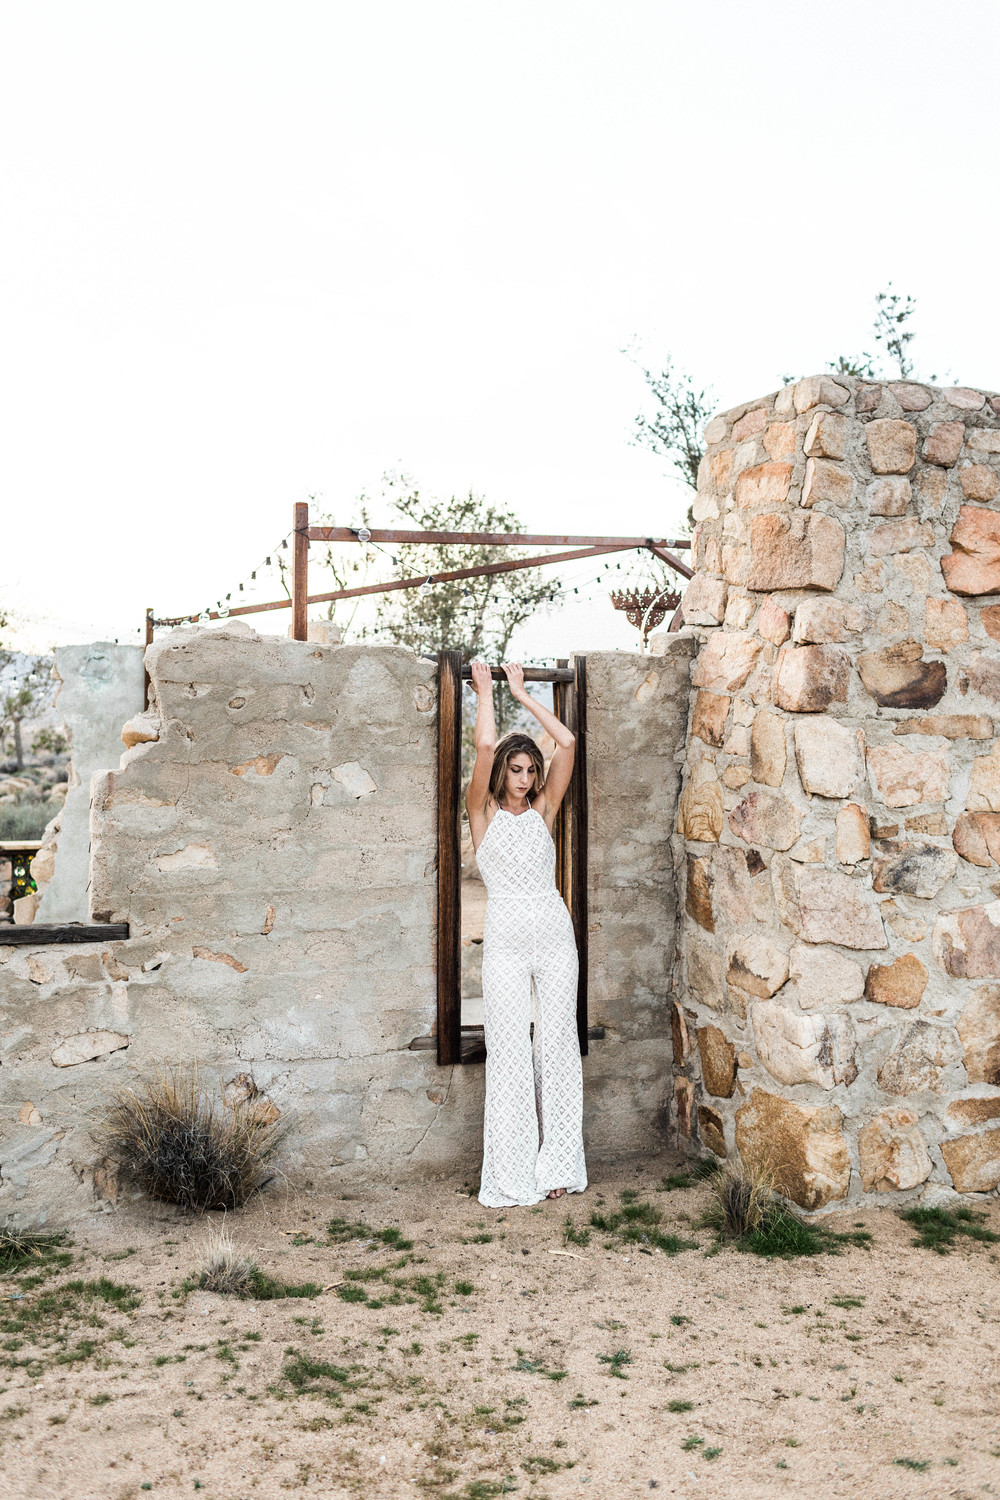 joshua-tree-wedding-editorial-photography-by-sarah-falugo-photography-7526.jpg